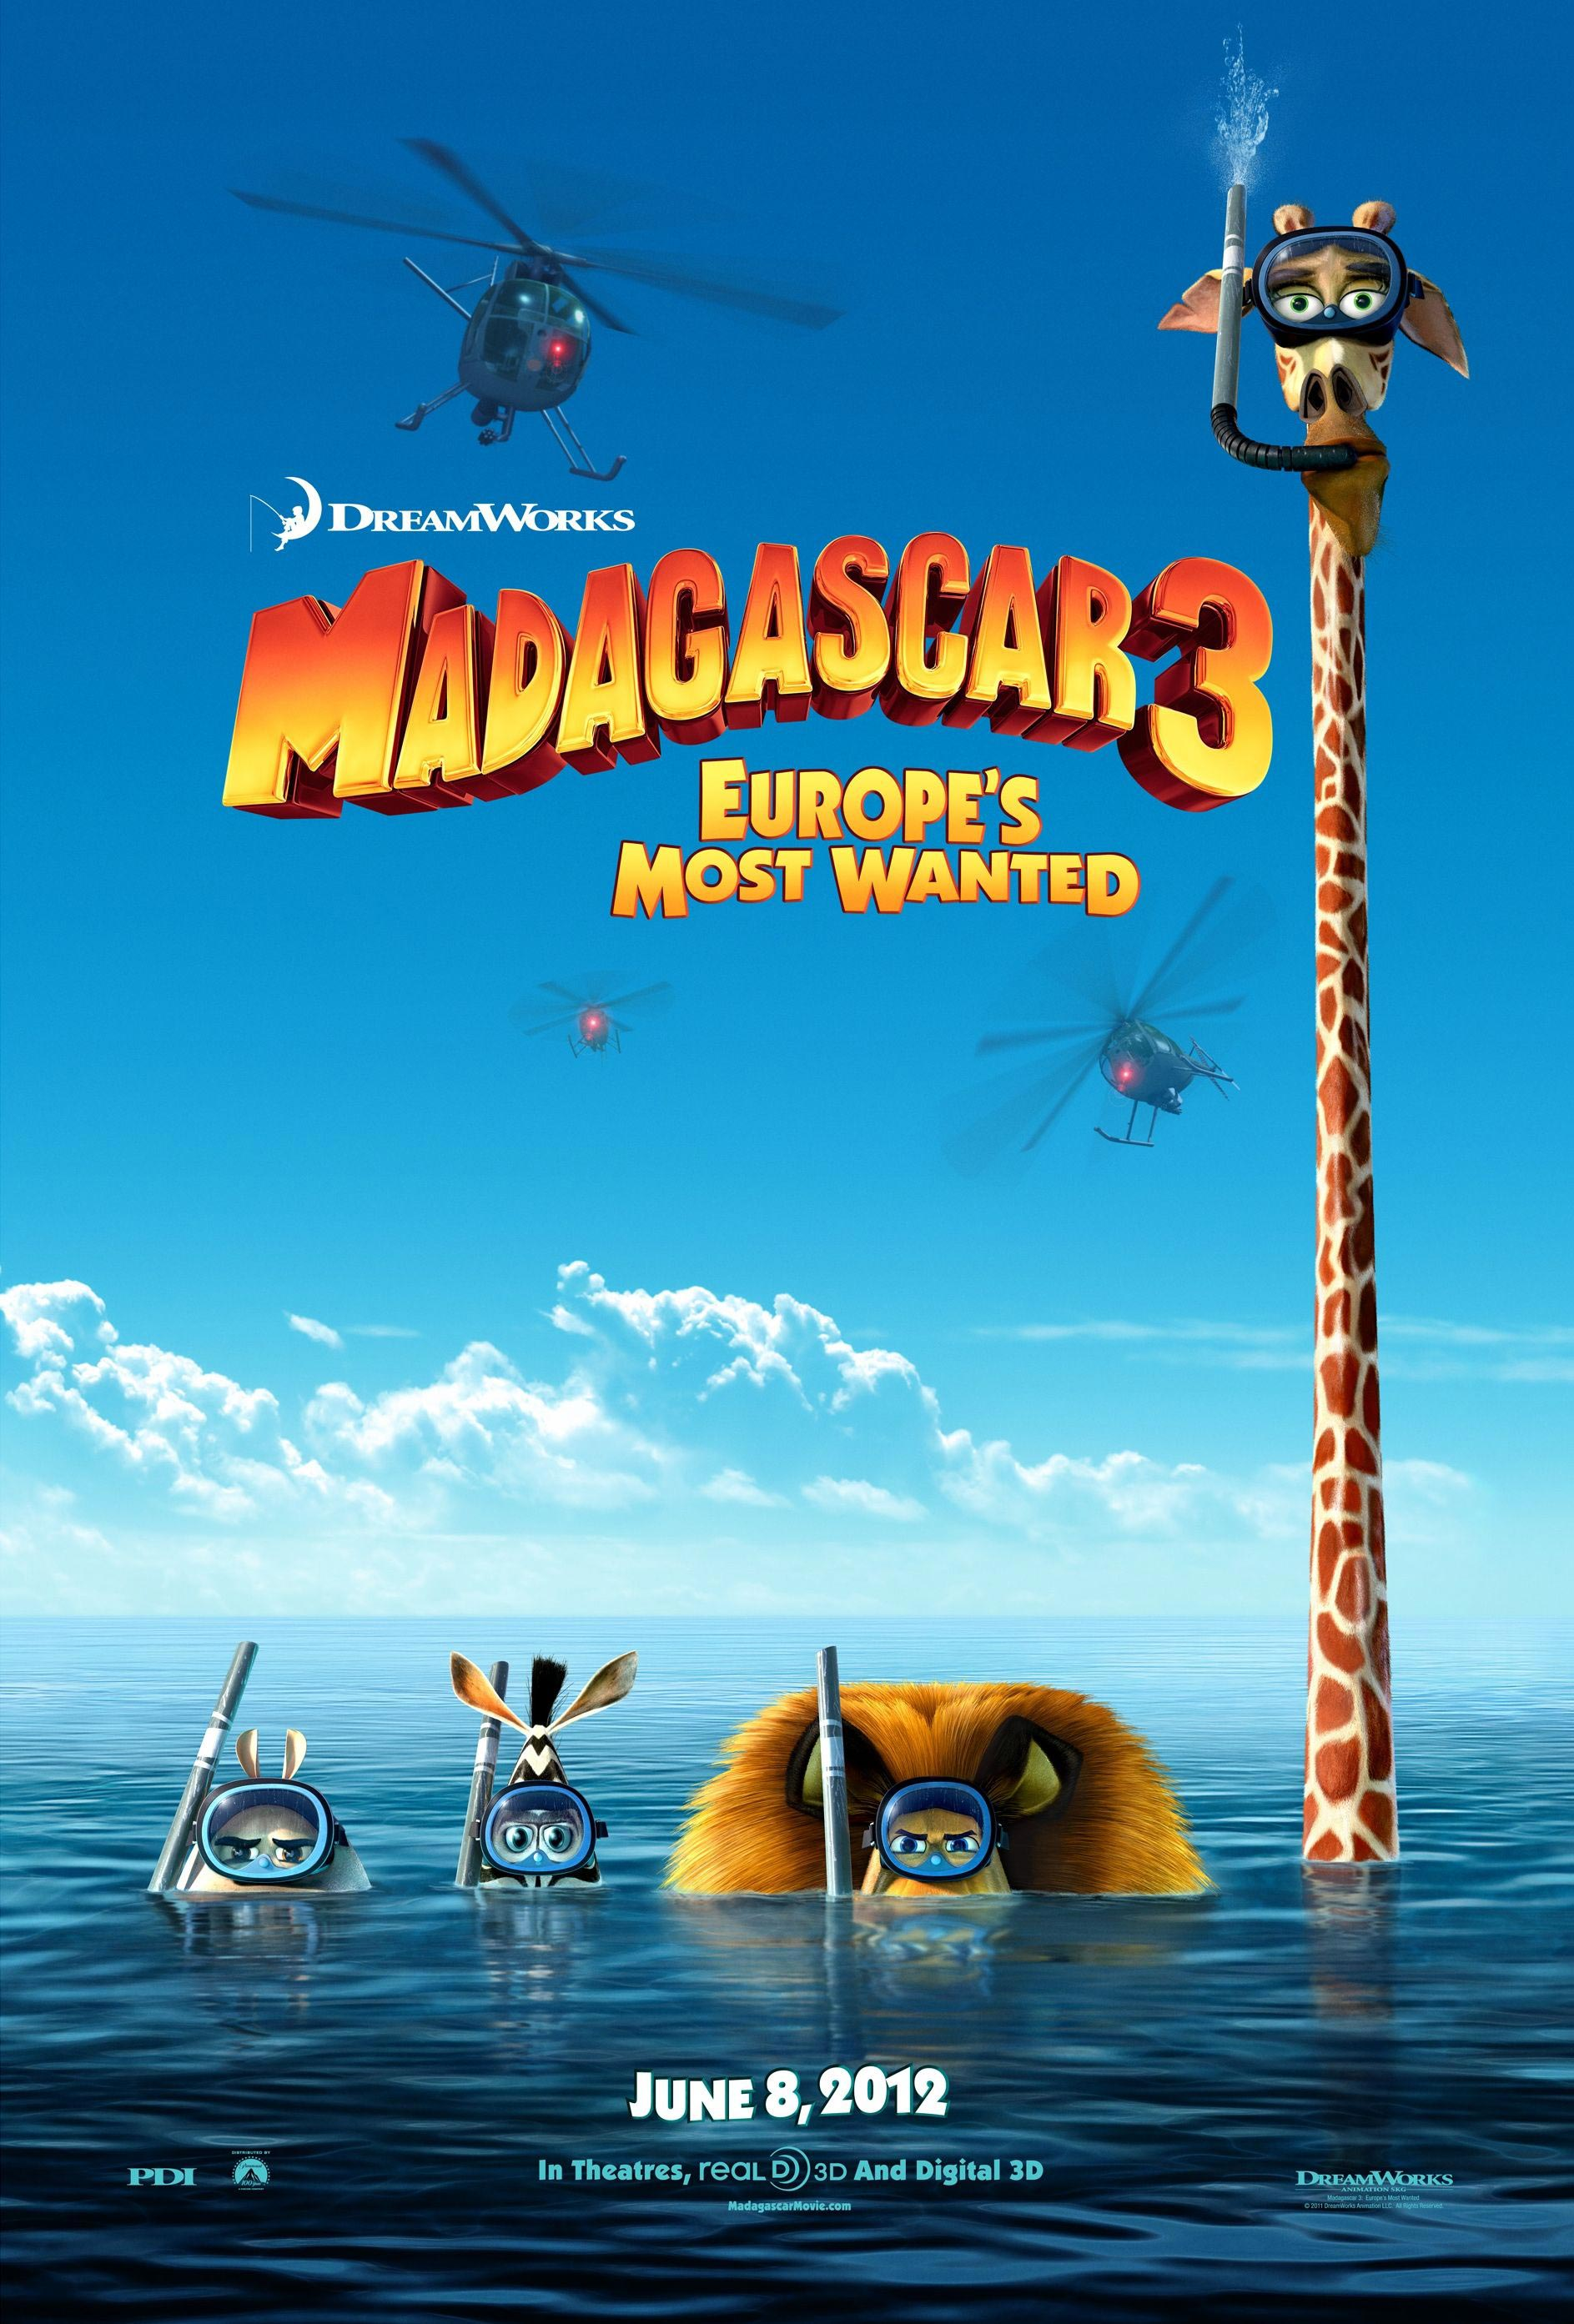 Madagascar 3 europe's most wanted trailer and two posters